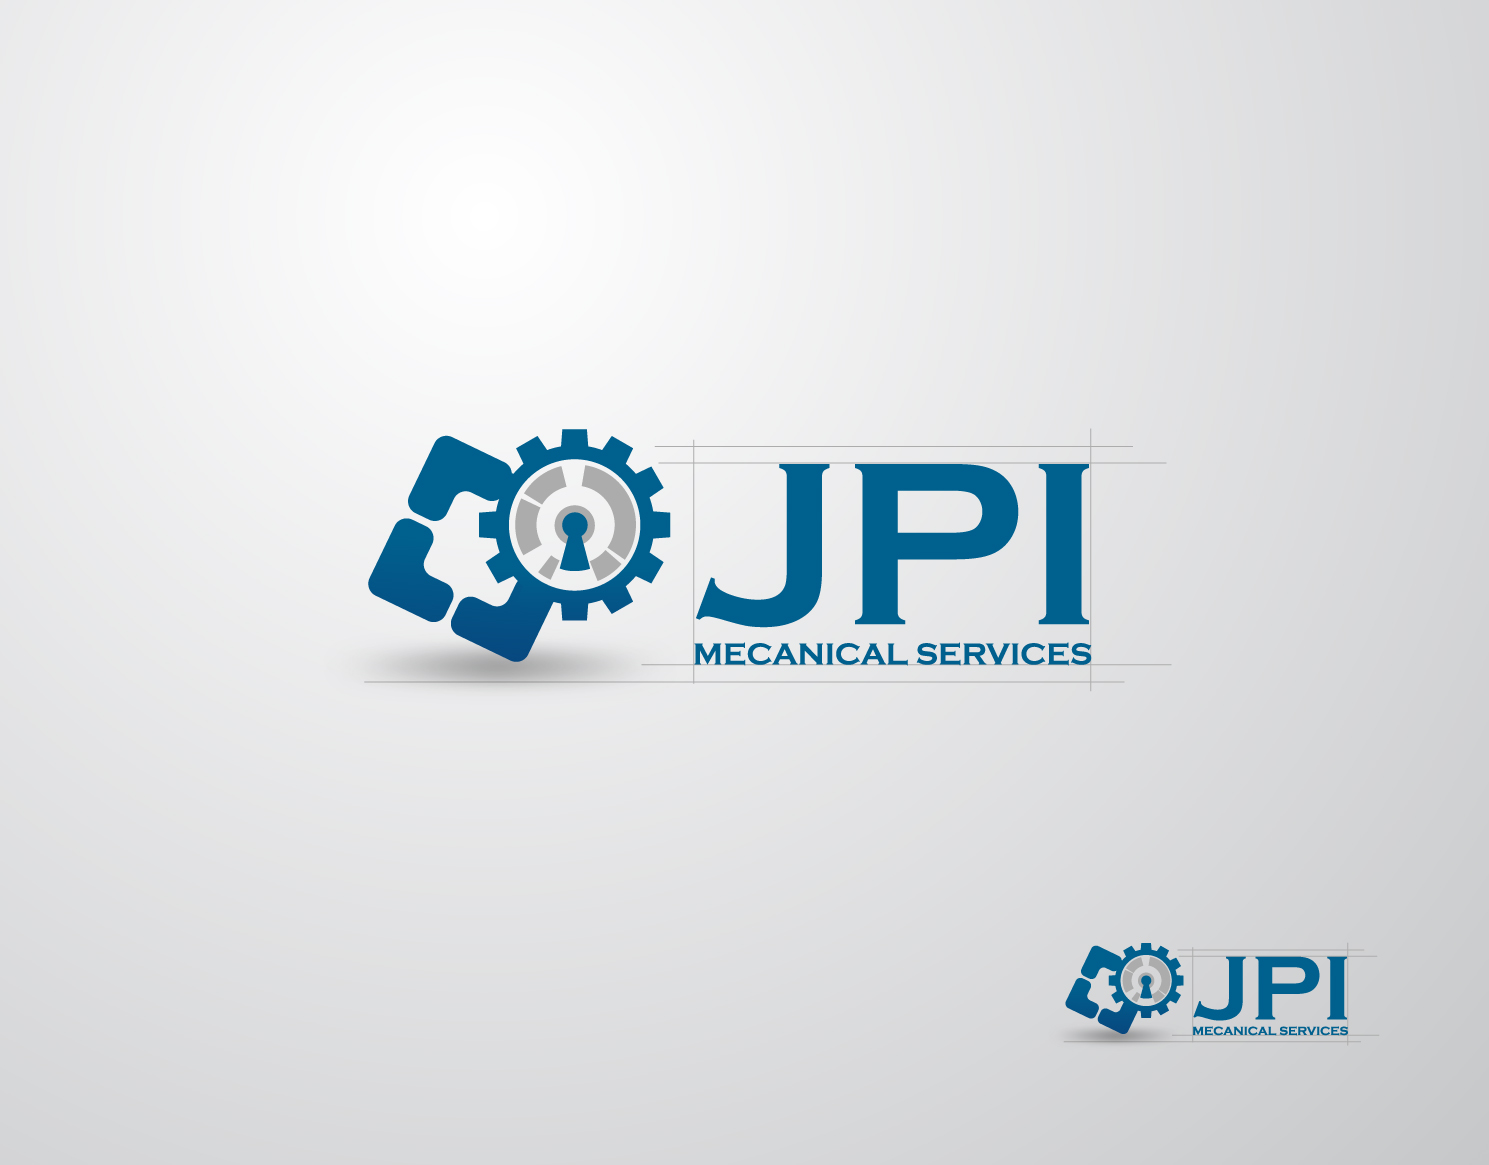 Logo Design by Mark Anthony Moreto Jordan - Entry No. 32 in the Logo Design Contest Inspiring Logo Design for JPI Mecanical Services.